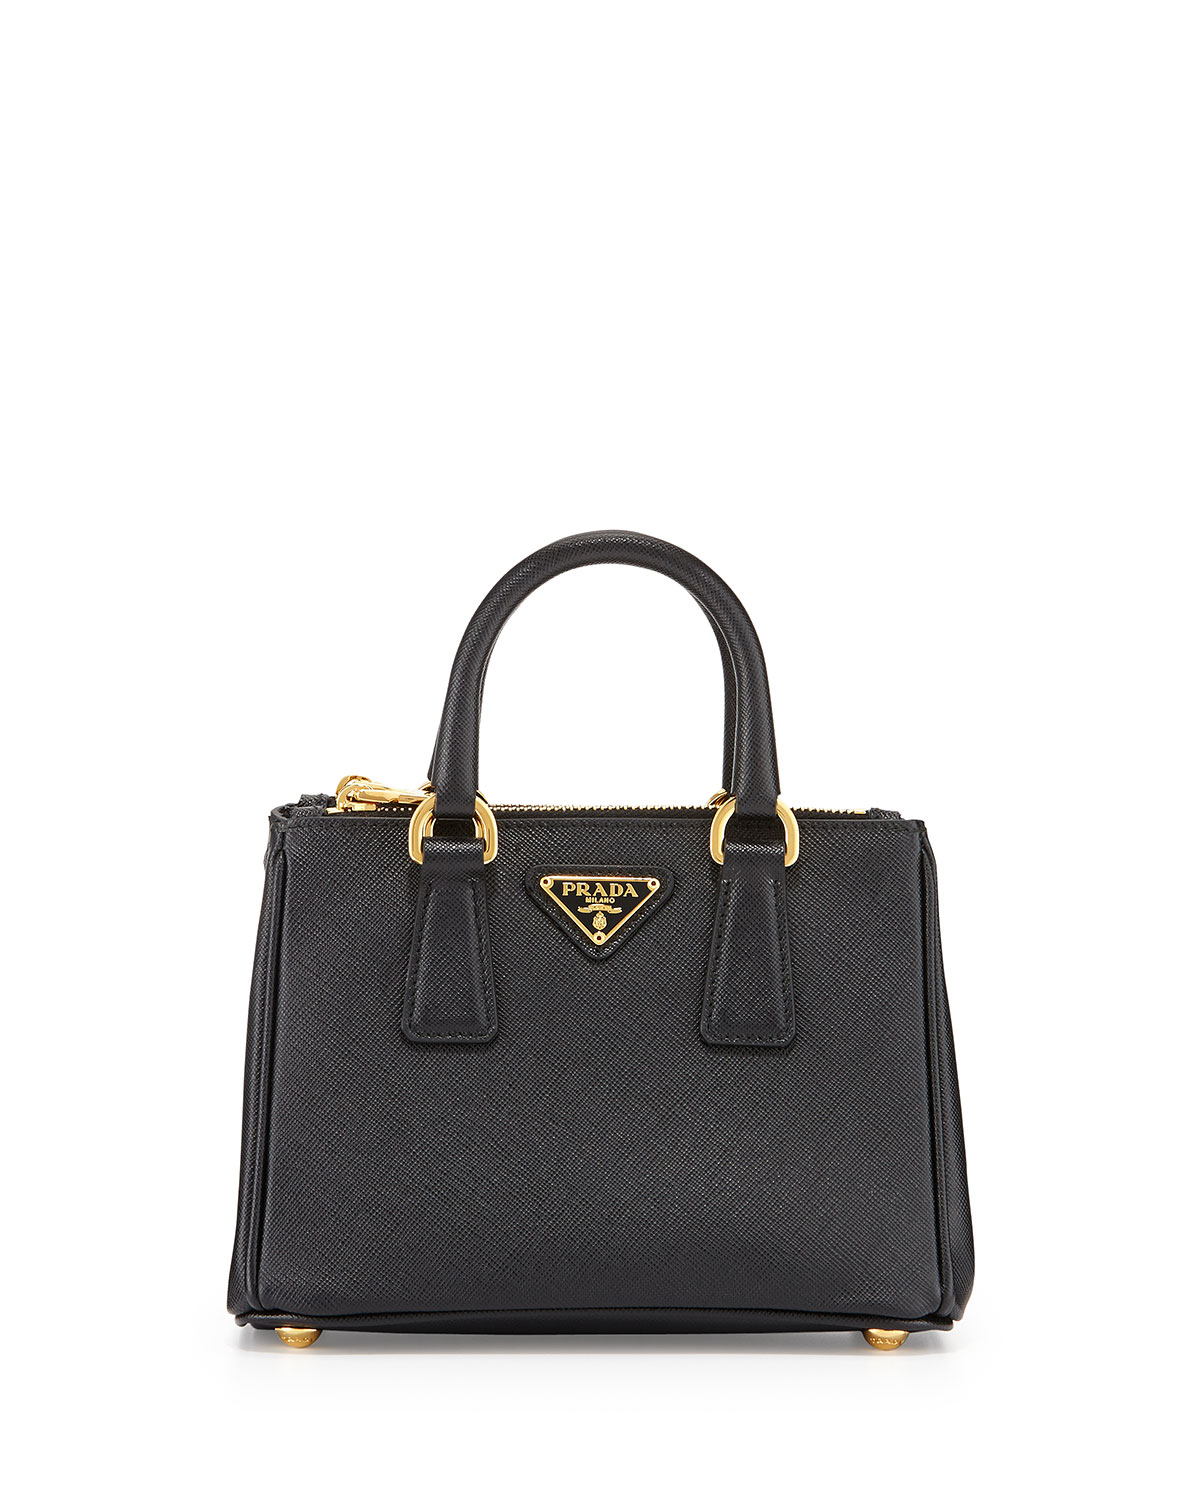 aa4494392dc6 Prada Saffiano Mini Galleria Crossbody Bag, Black (Nero) | Neiman Marcus